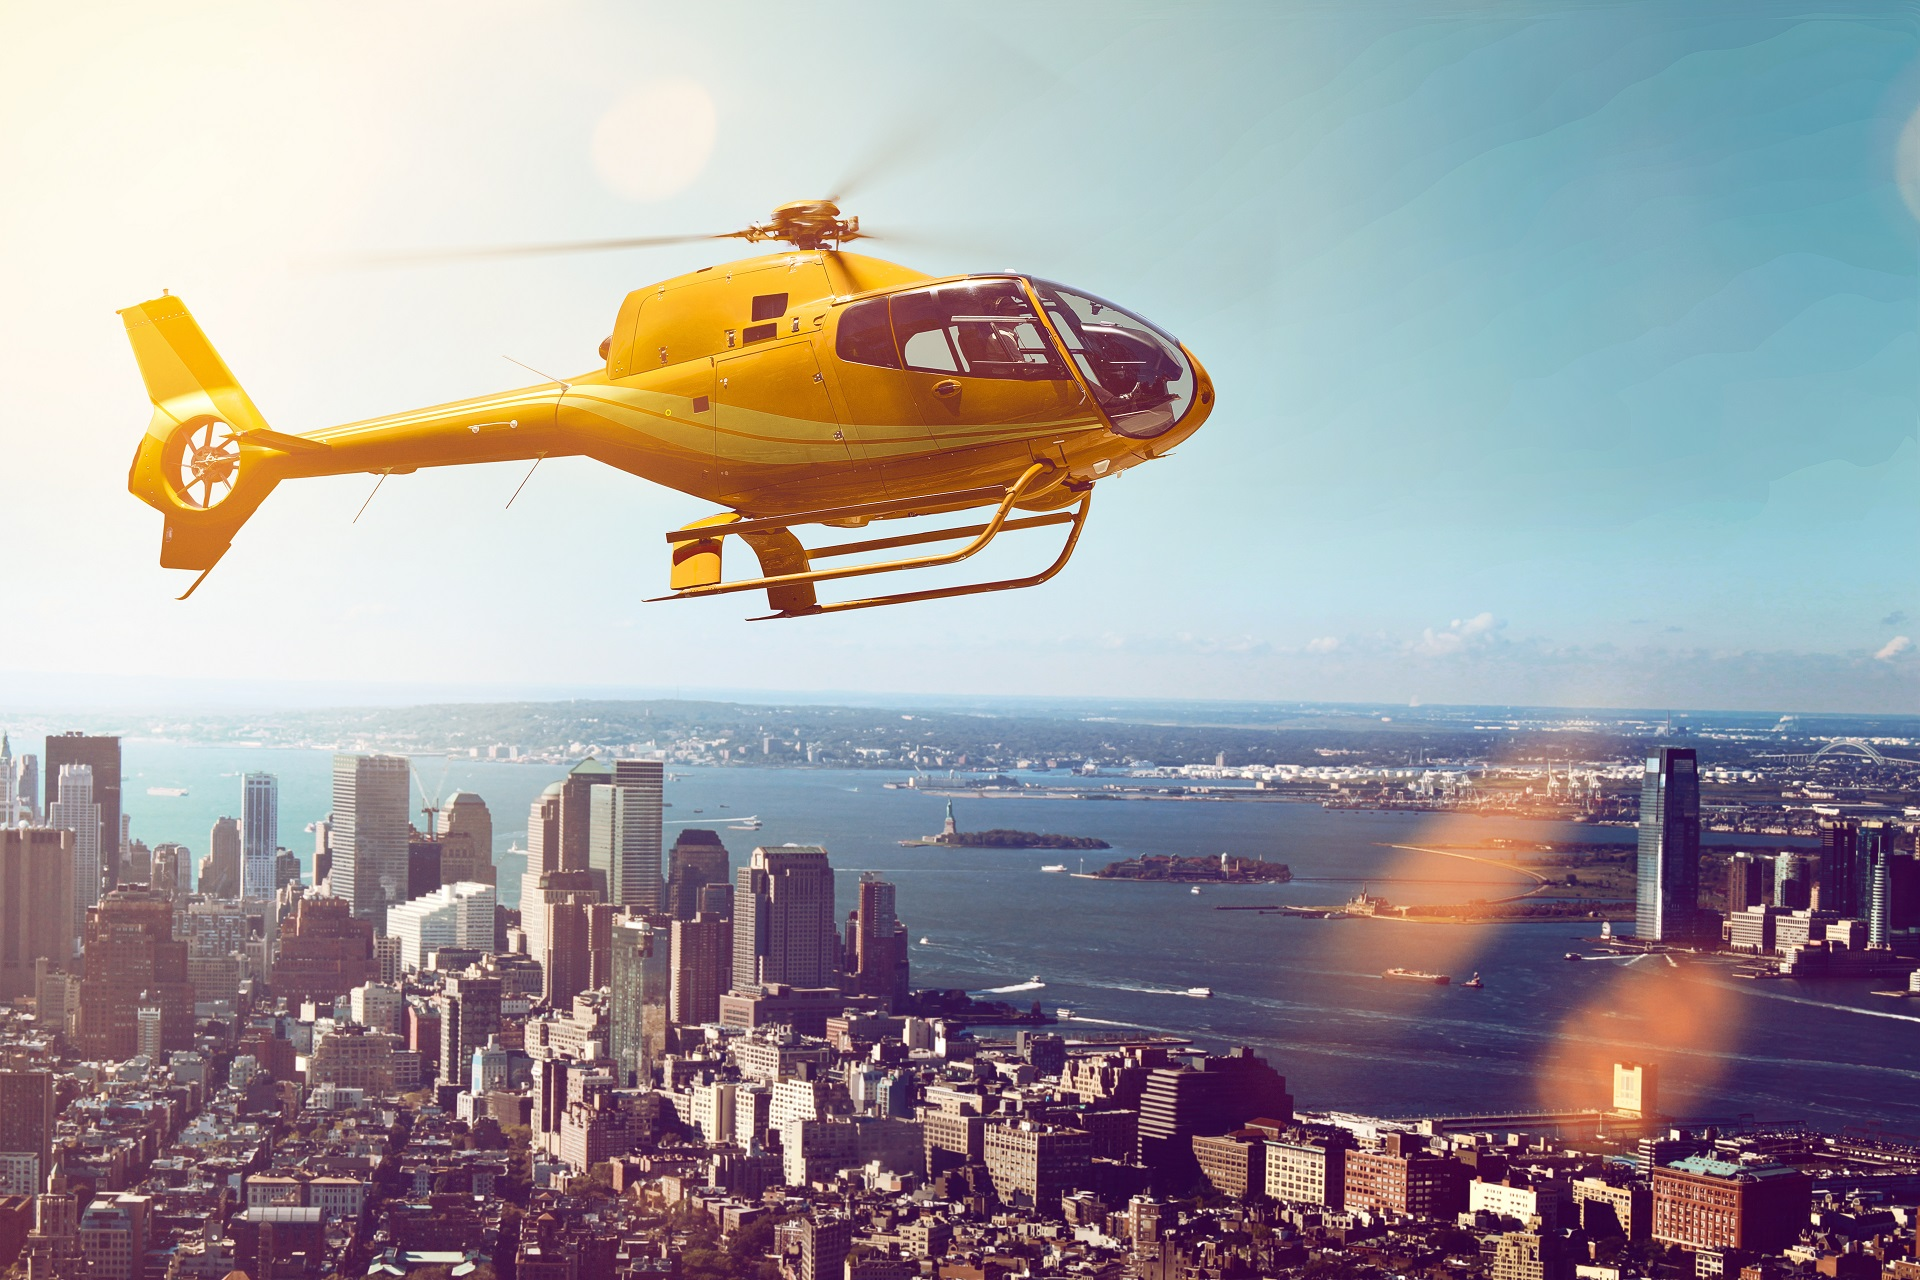 New York_Helicopter Flight_shutterstock_267936557